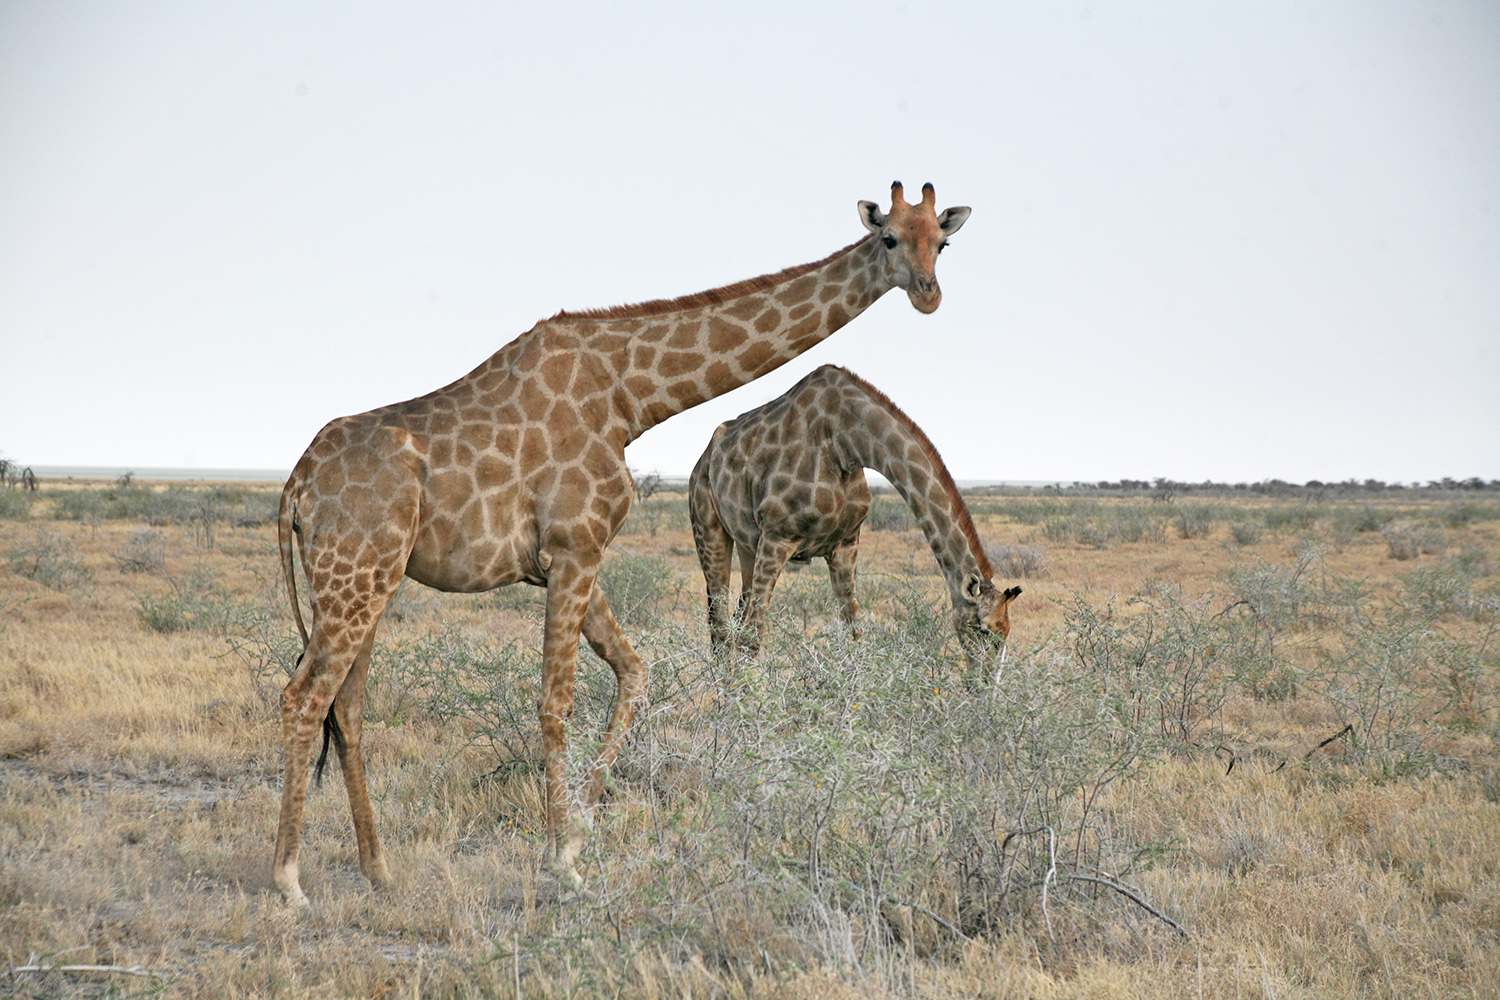 Etosha-nationa-park-safari-watering-giraffes